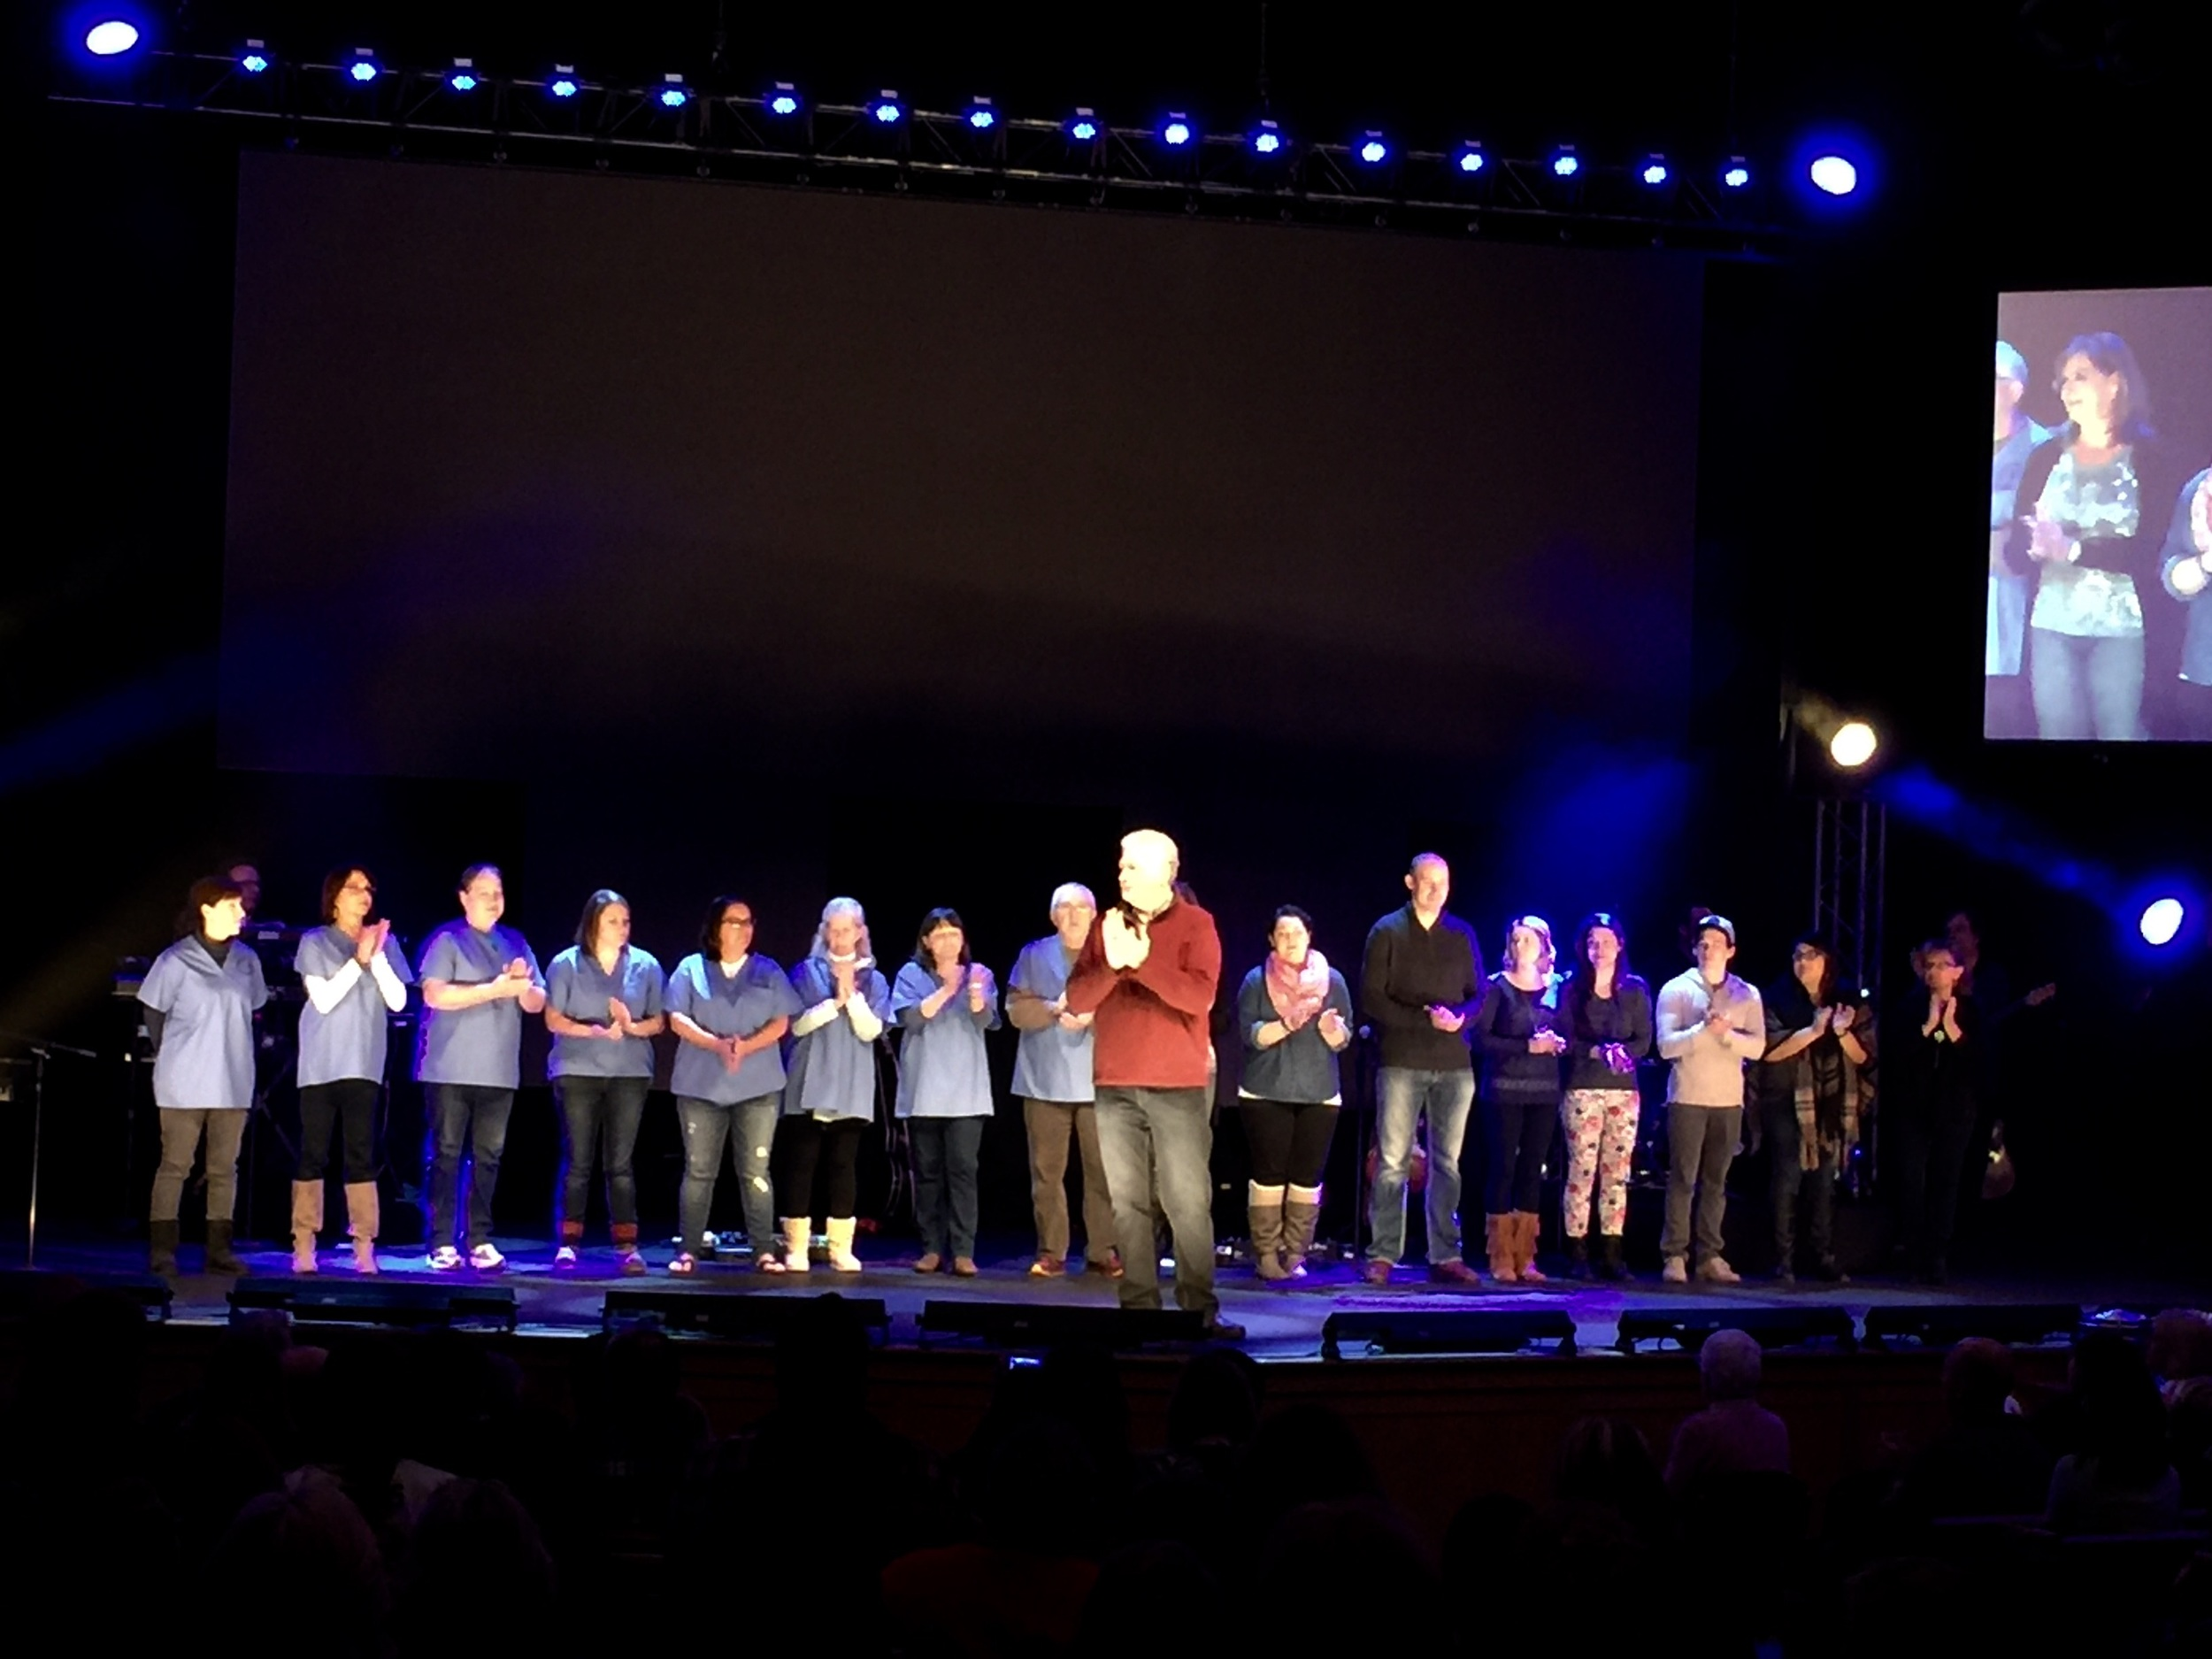 The team was commissioned, blessed, and prayed over at Fox River (Waukesha campus) on Sunday.